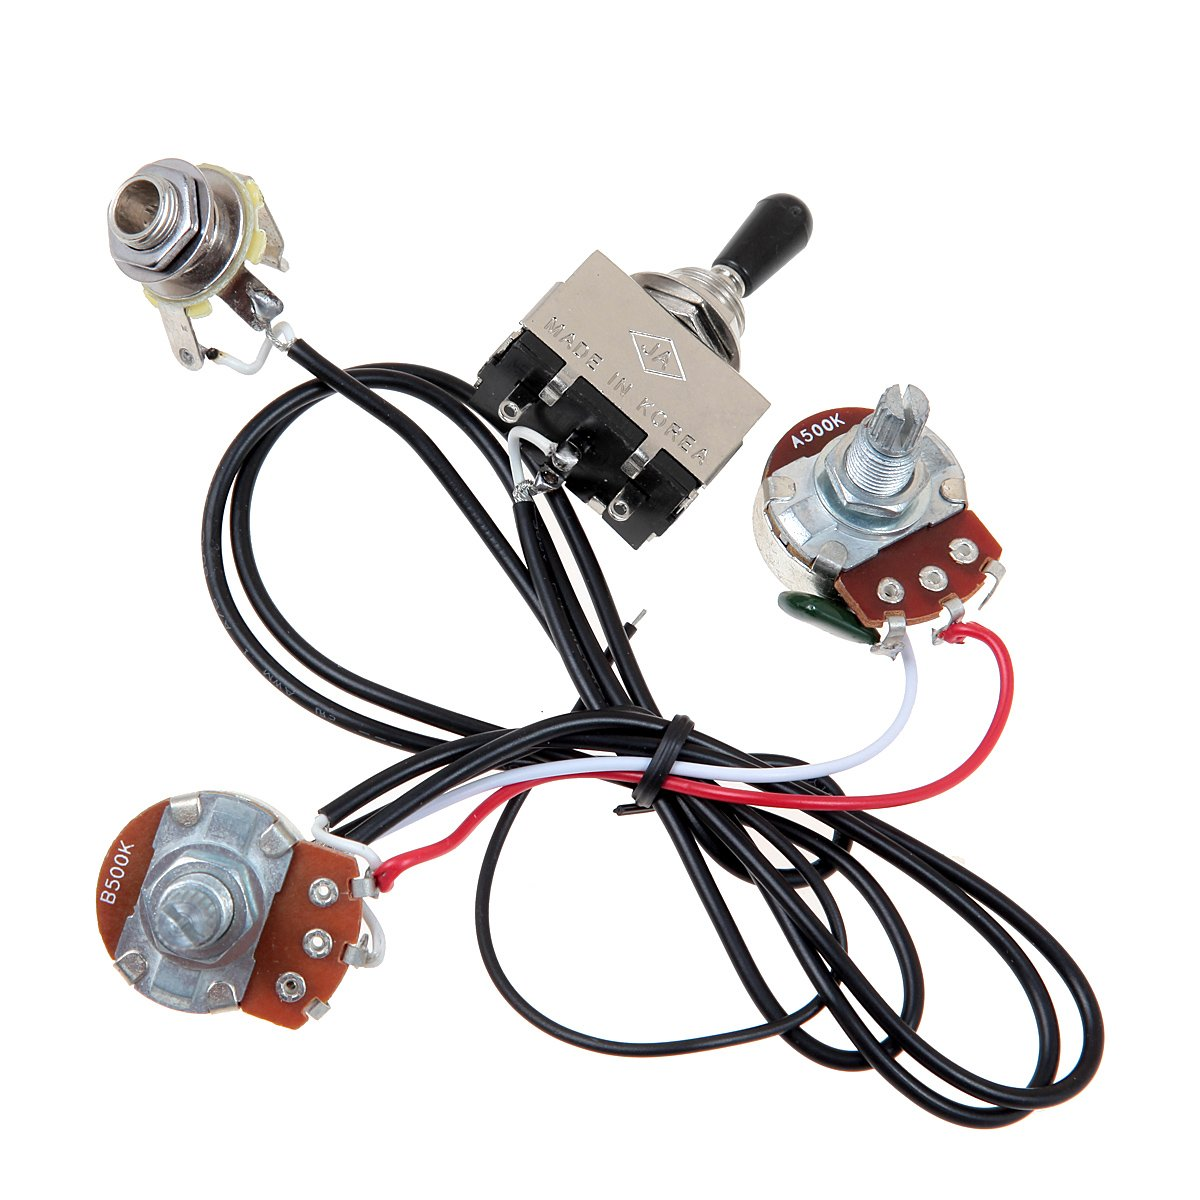 Toggle Switch Wiring Harness Opinions About Diagram Three Way For Pick Up Amazon Com Kmise Electric Guitar Prewired Kit 3 Rh Installation On Off